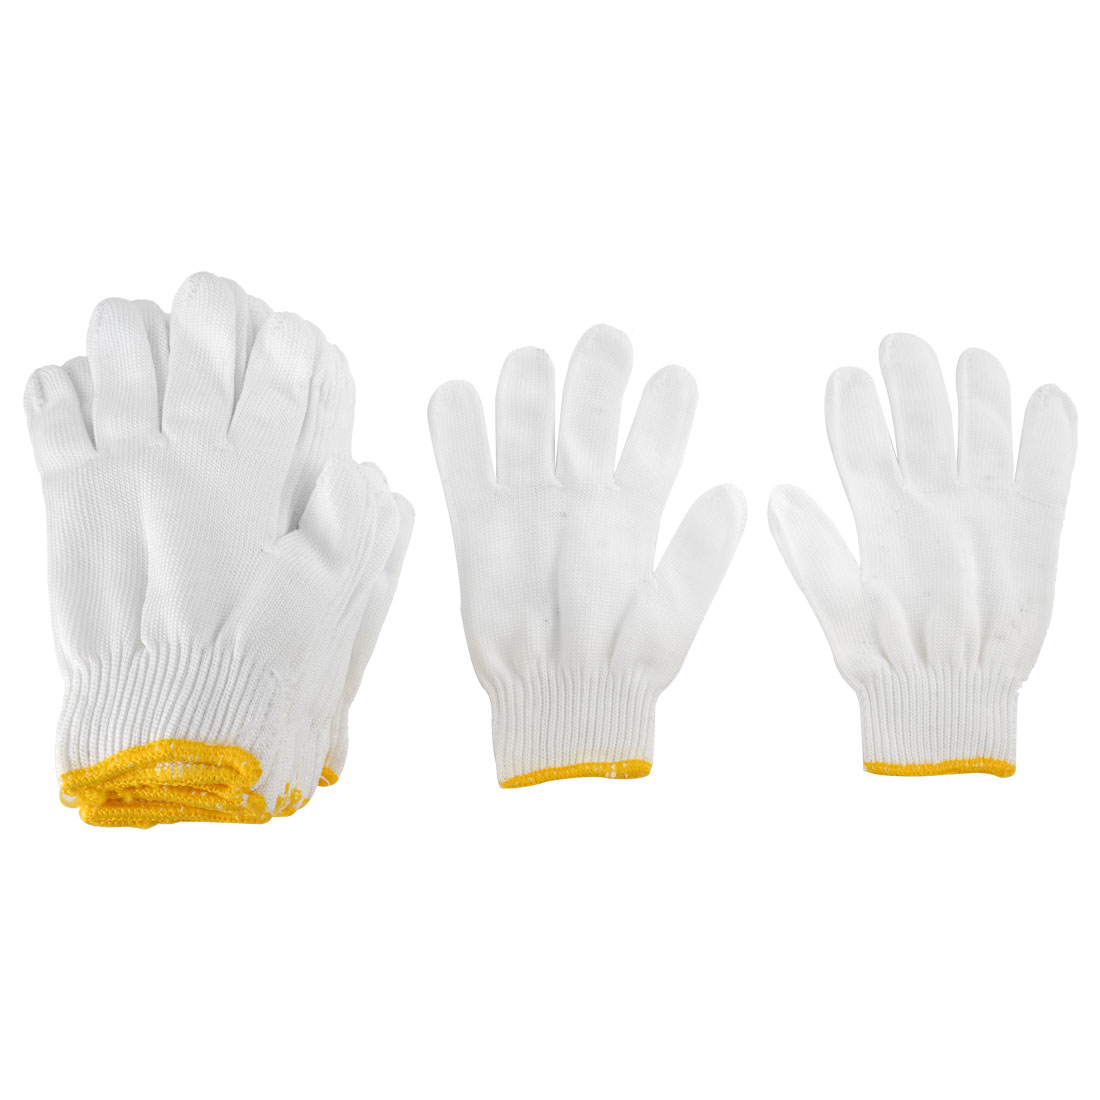 12 Pairs Knitted Cotton Factory Industry Work Protective Gloves White Yellow